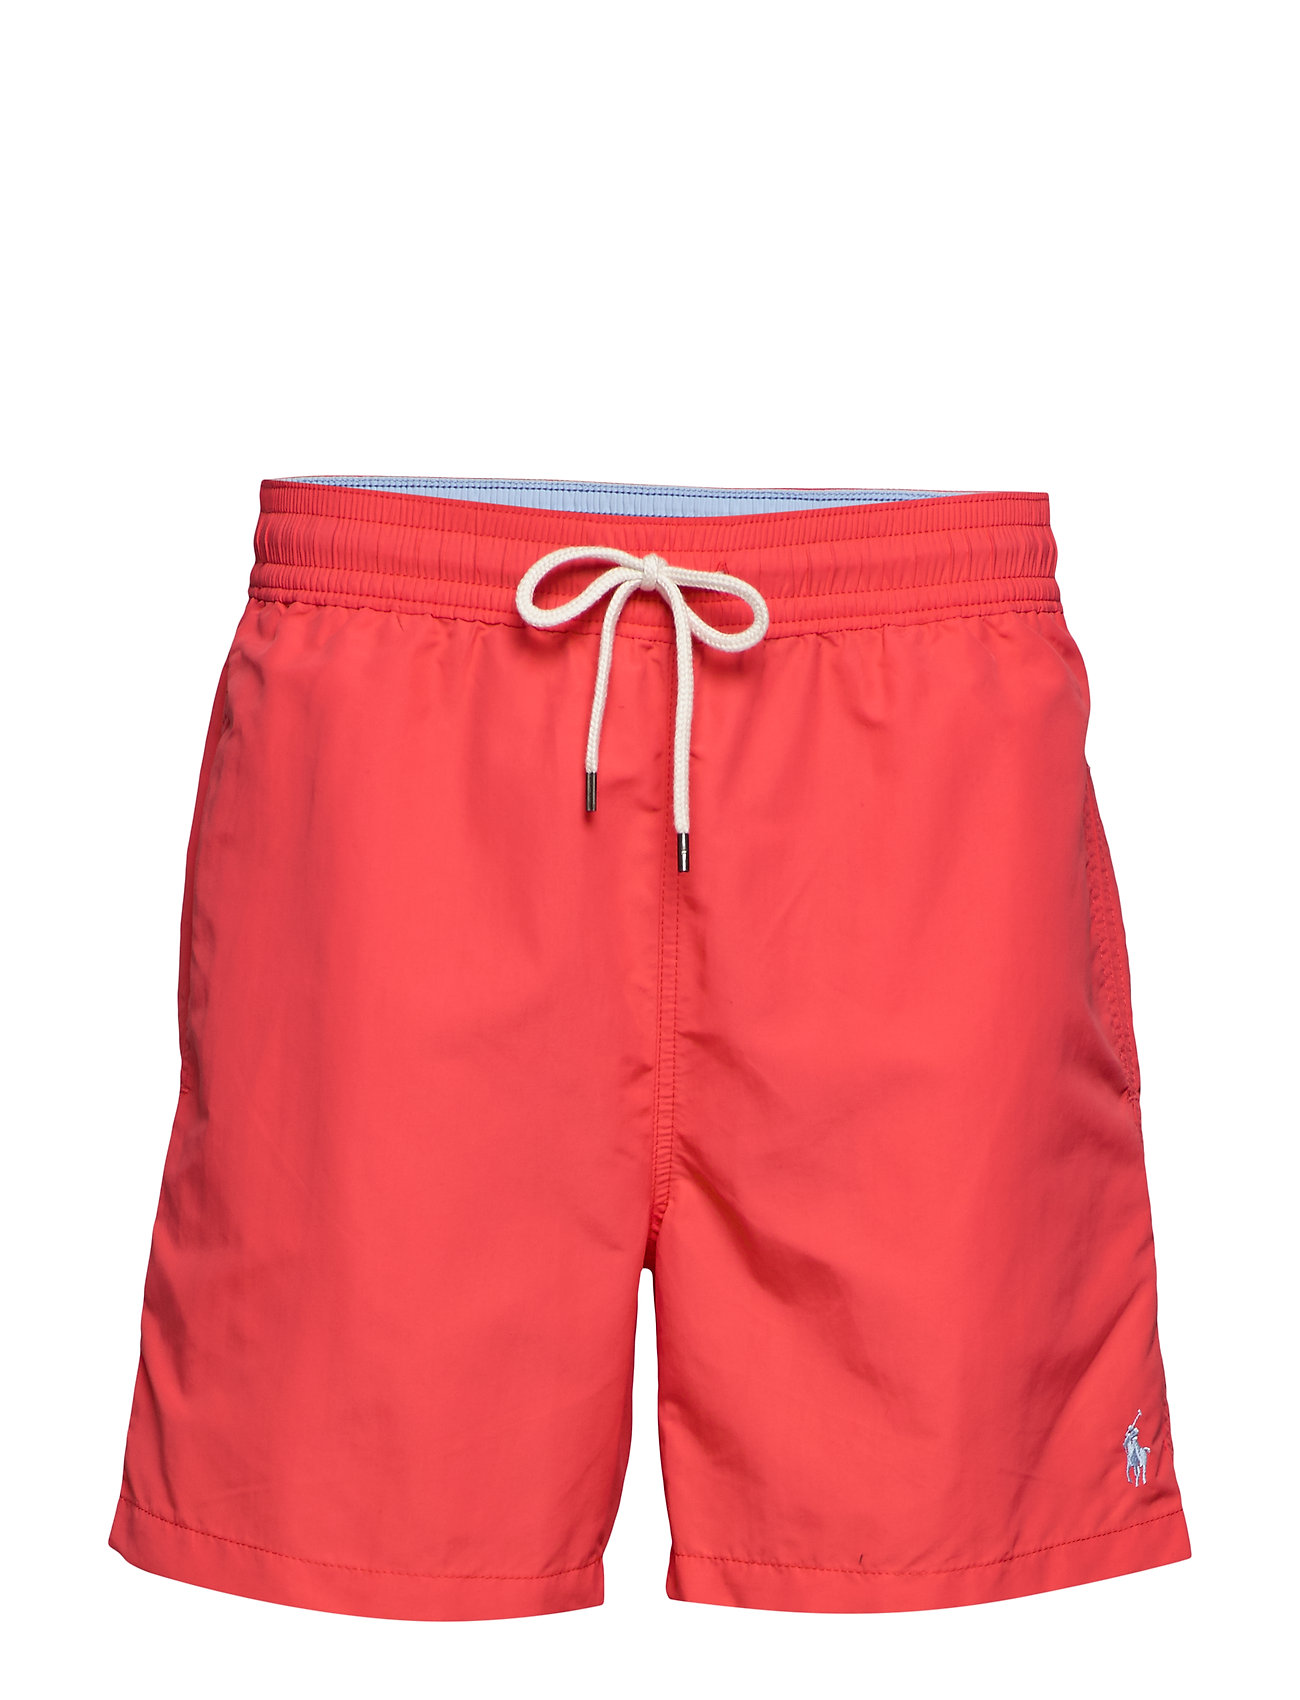 Polo Ralph Lauren 5½-Inch Traveler Swim Trunk - RACING RED